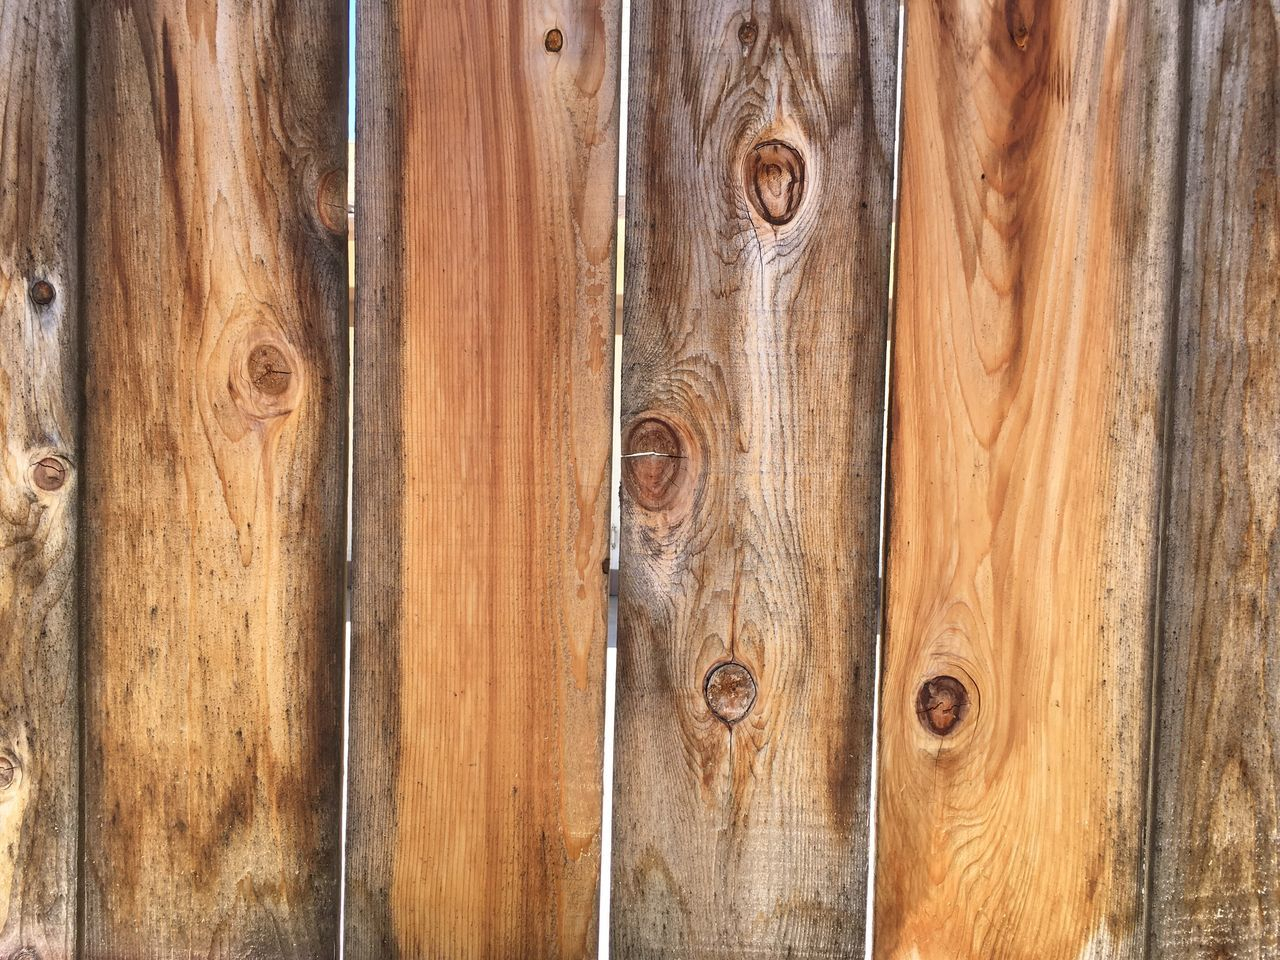 Natural Pattern Wood Fence Separation of Neighbors Wood - Material Close-up Brown